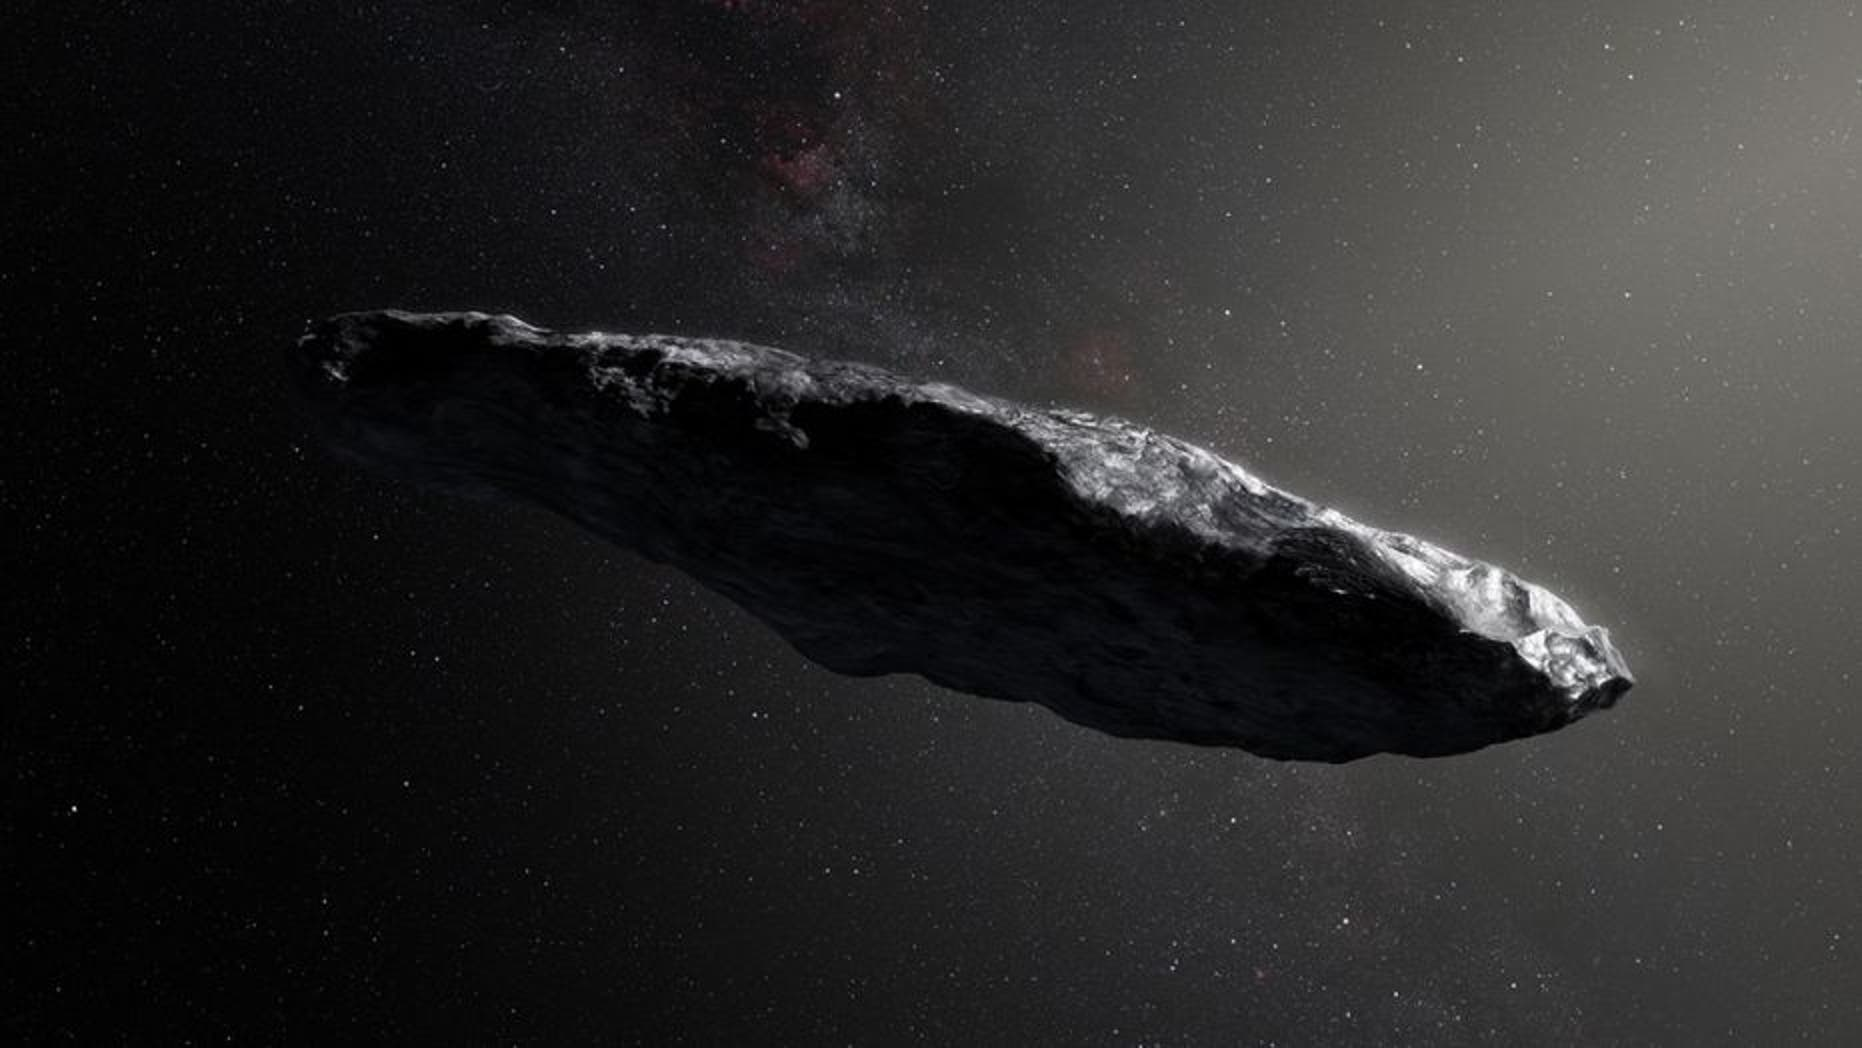 Artist's illustration of 'Oumuamua, the first interstellar object ever spotted in our solar system.  (M. Kornmesser/ESO)